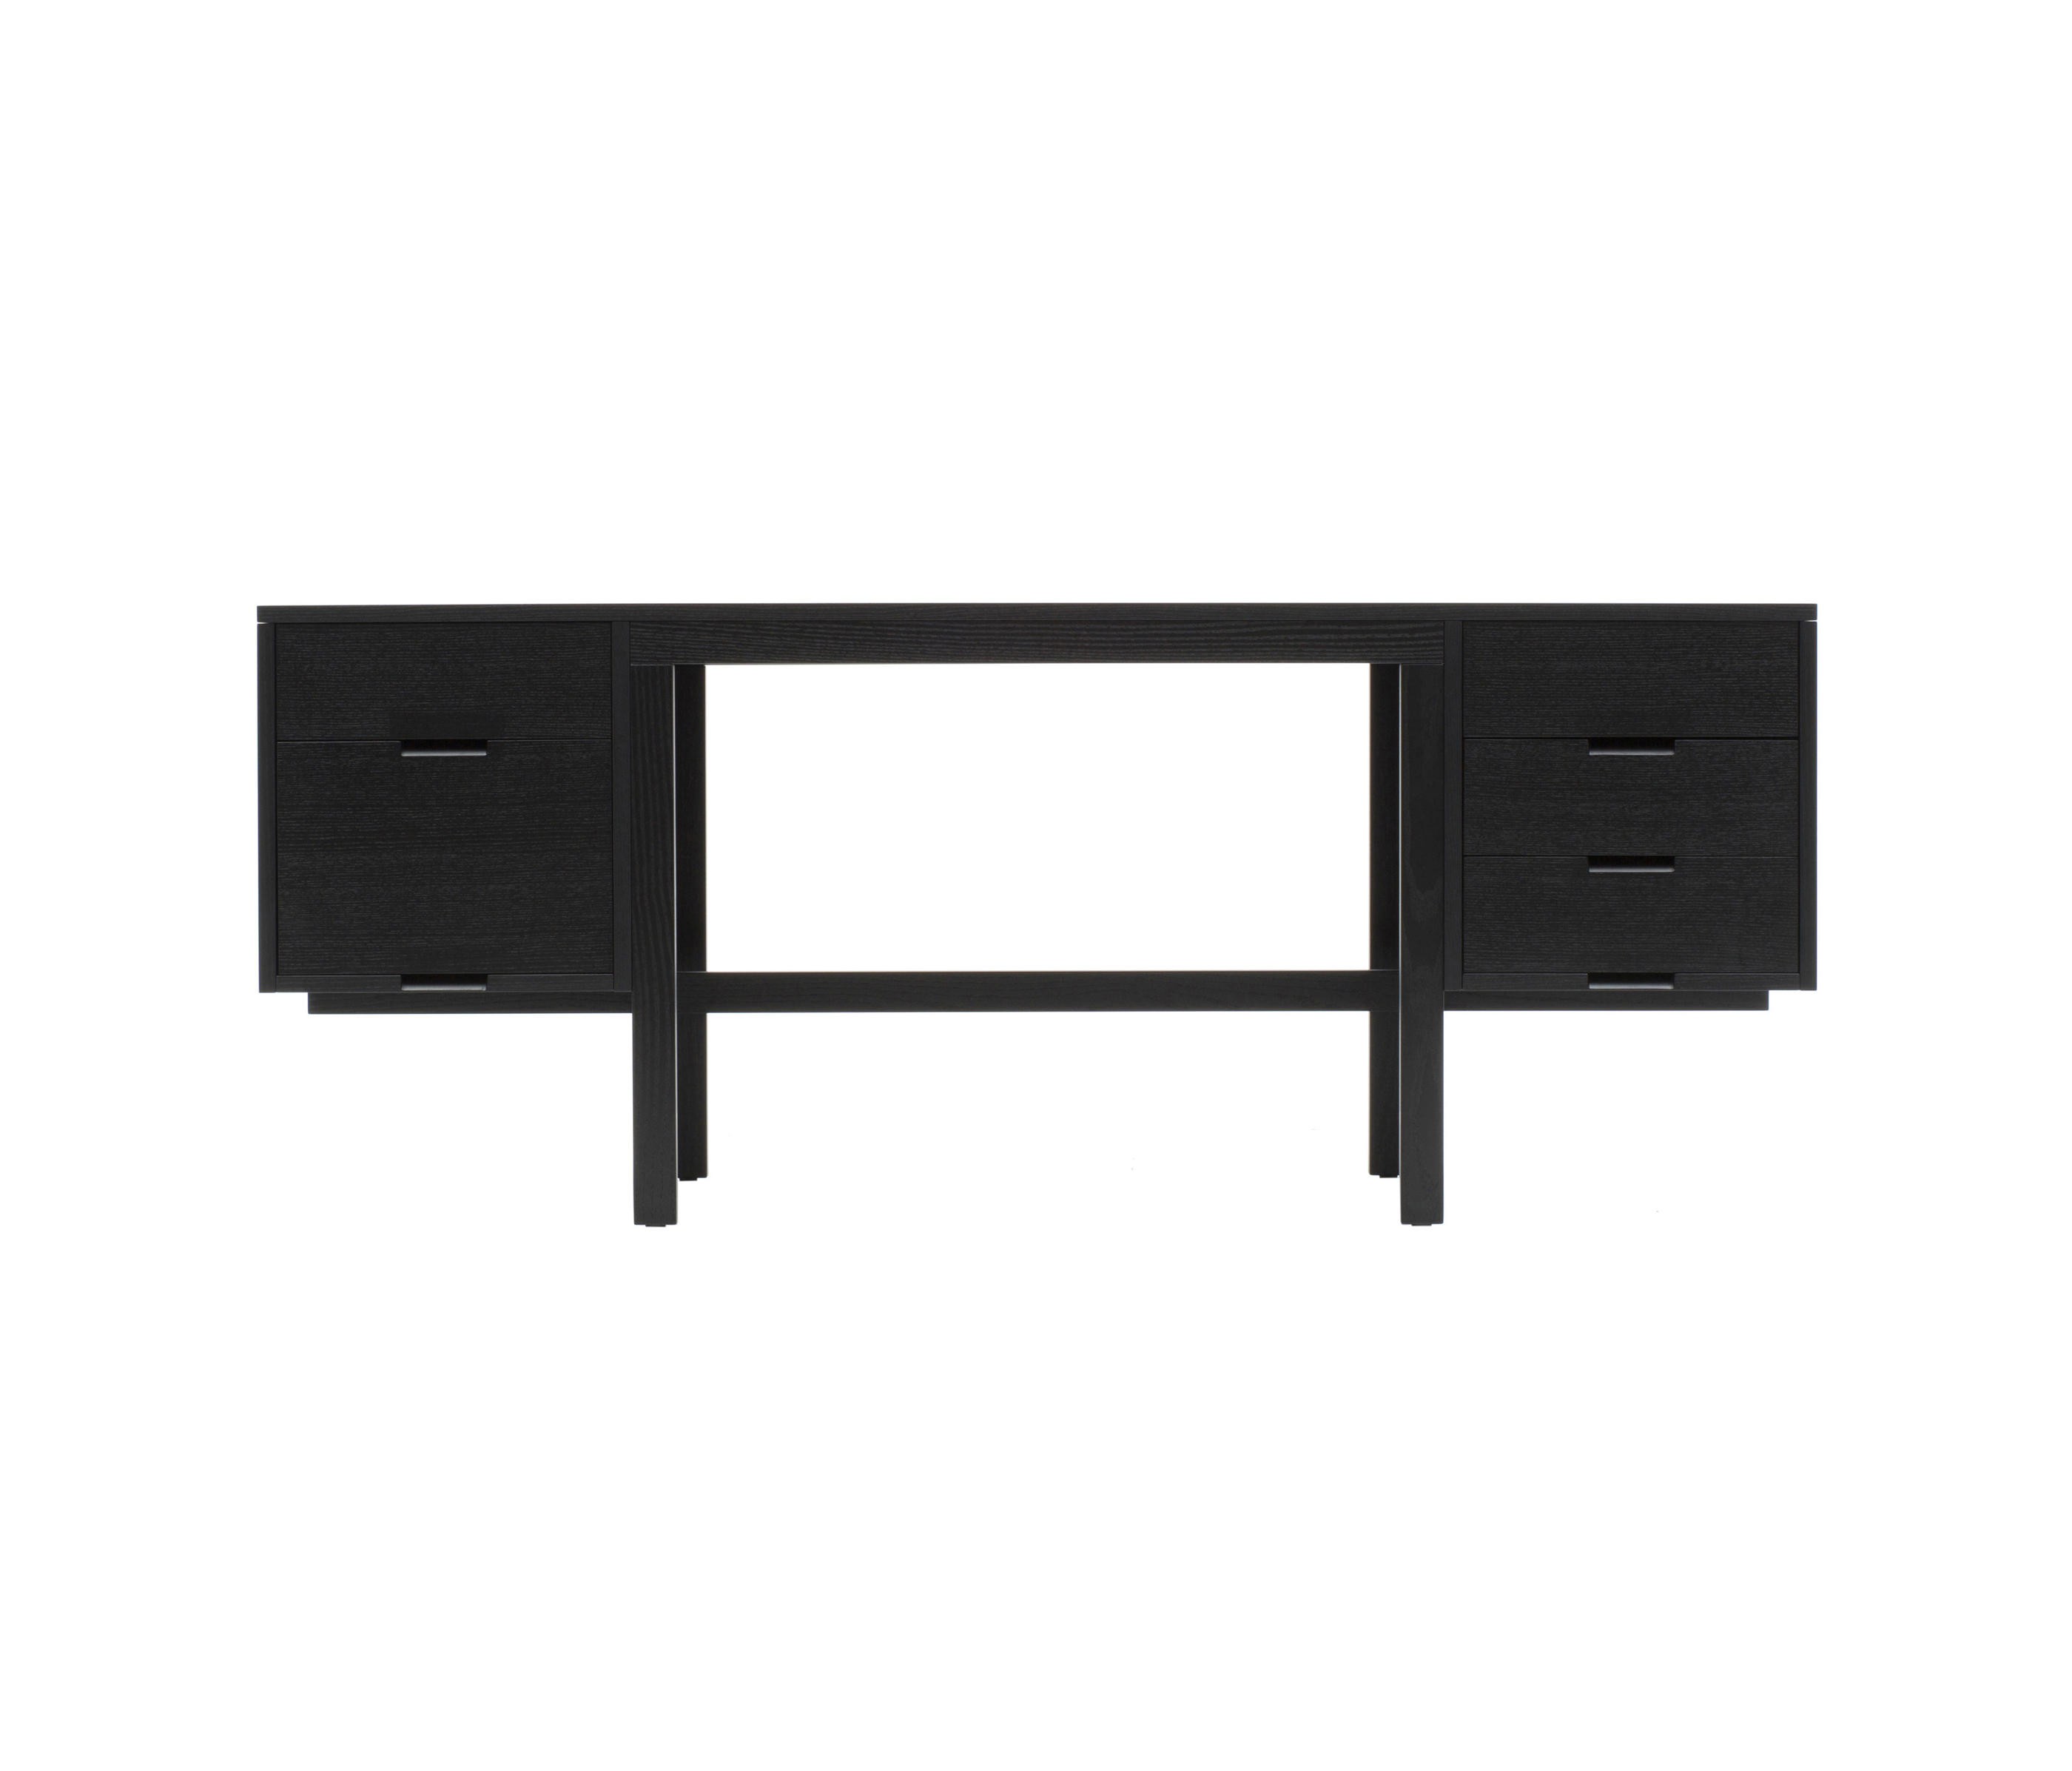 word 39office desks workstations39and. Pecs By Cassina | Individual Desks Word 39office Workstations39and